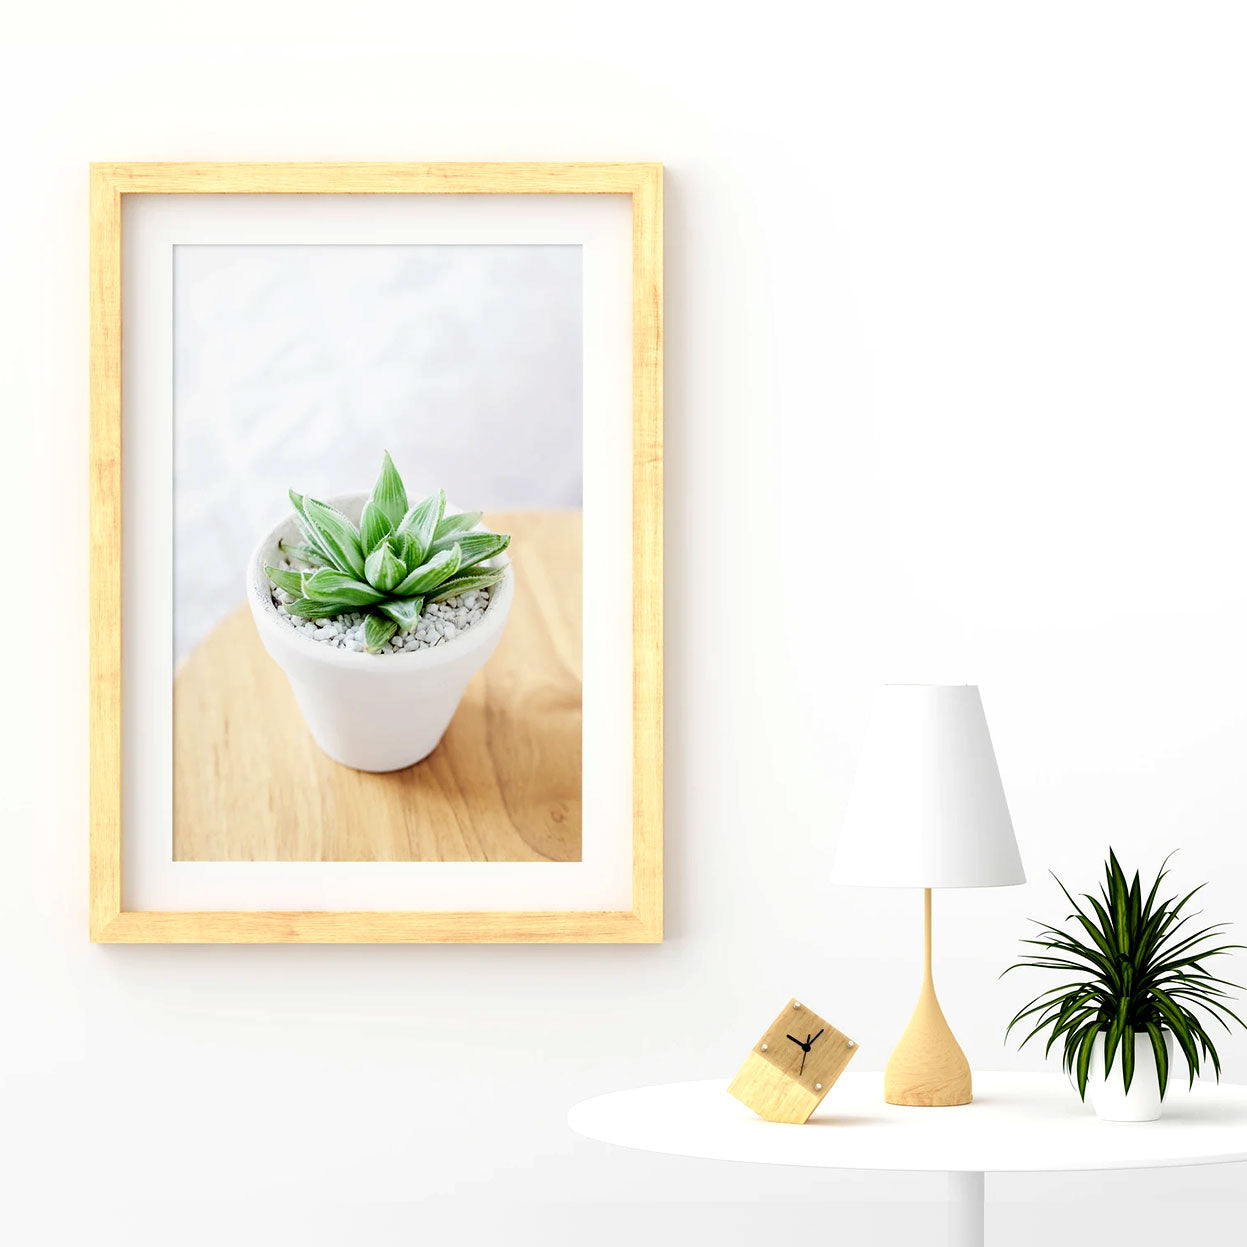 Printable Succulent Wall Art for sale, Succulents gift Ideas, Succulent Art Prints, Succulent Wall Decor, Watercolor Cactus Prints for sale